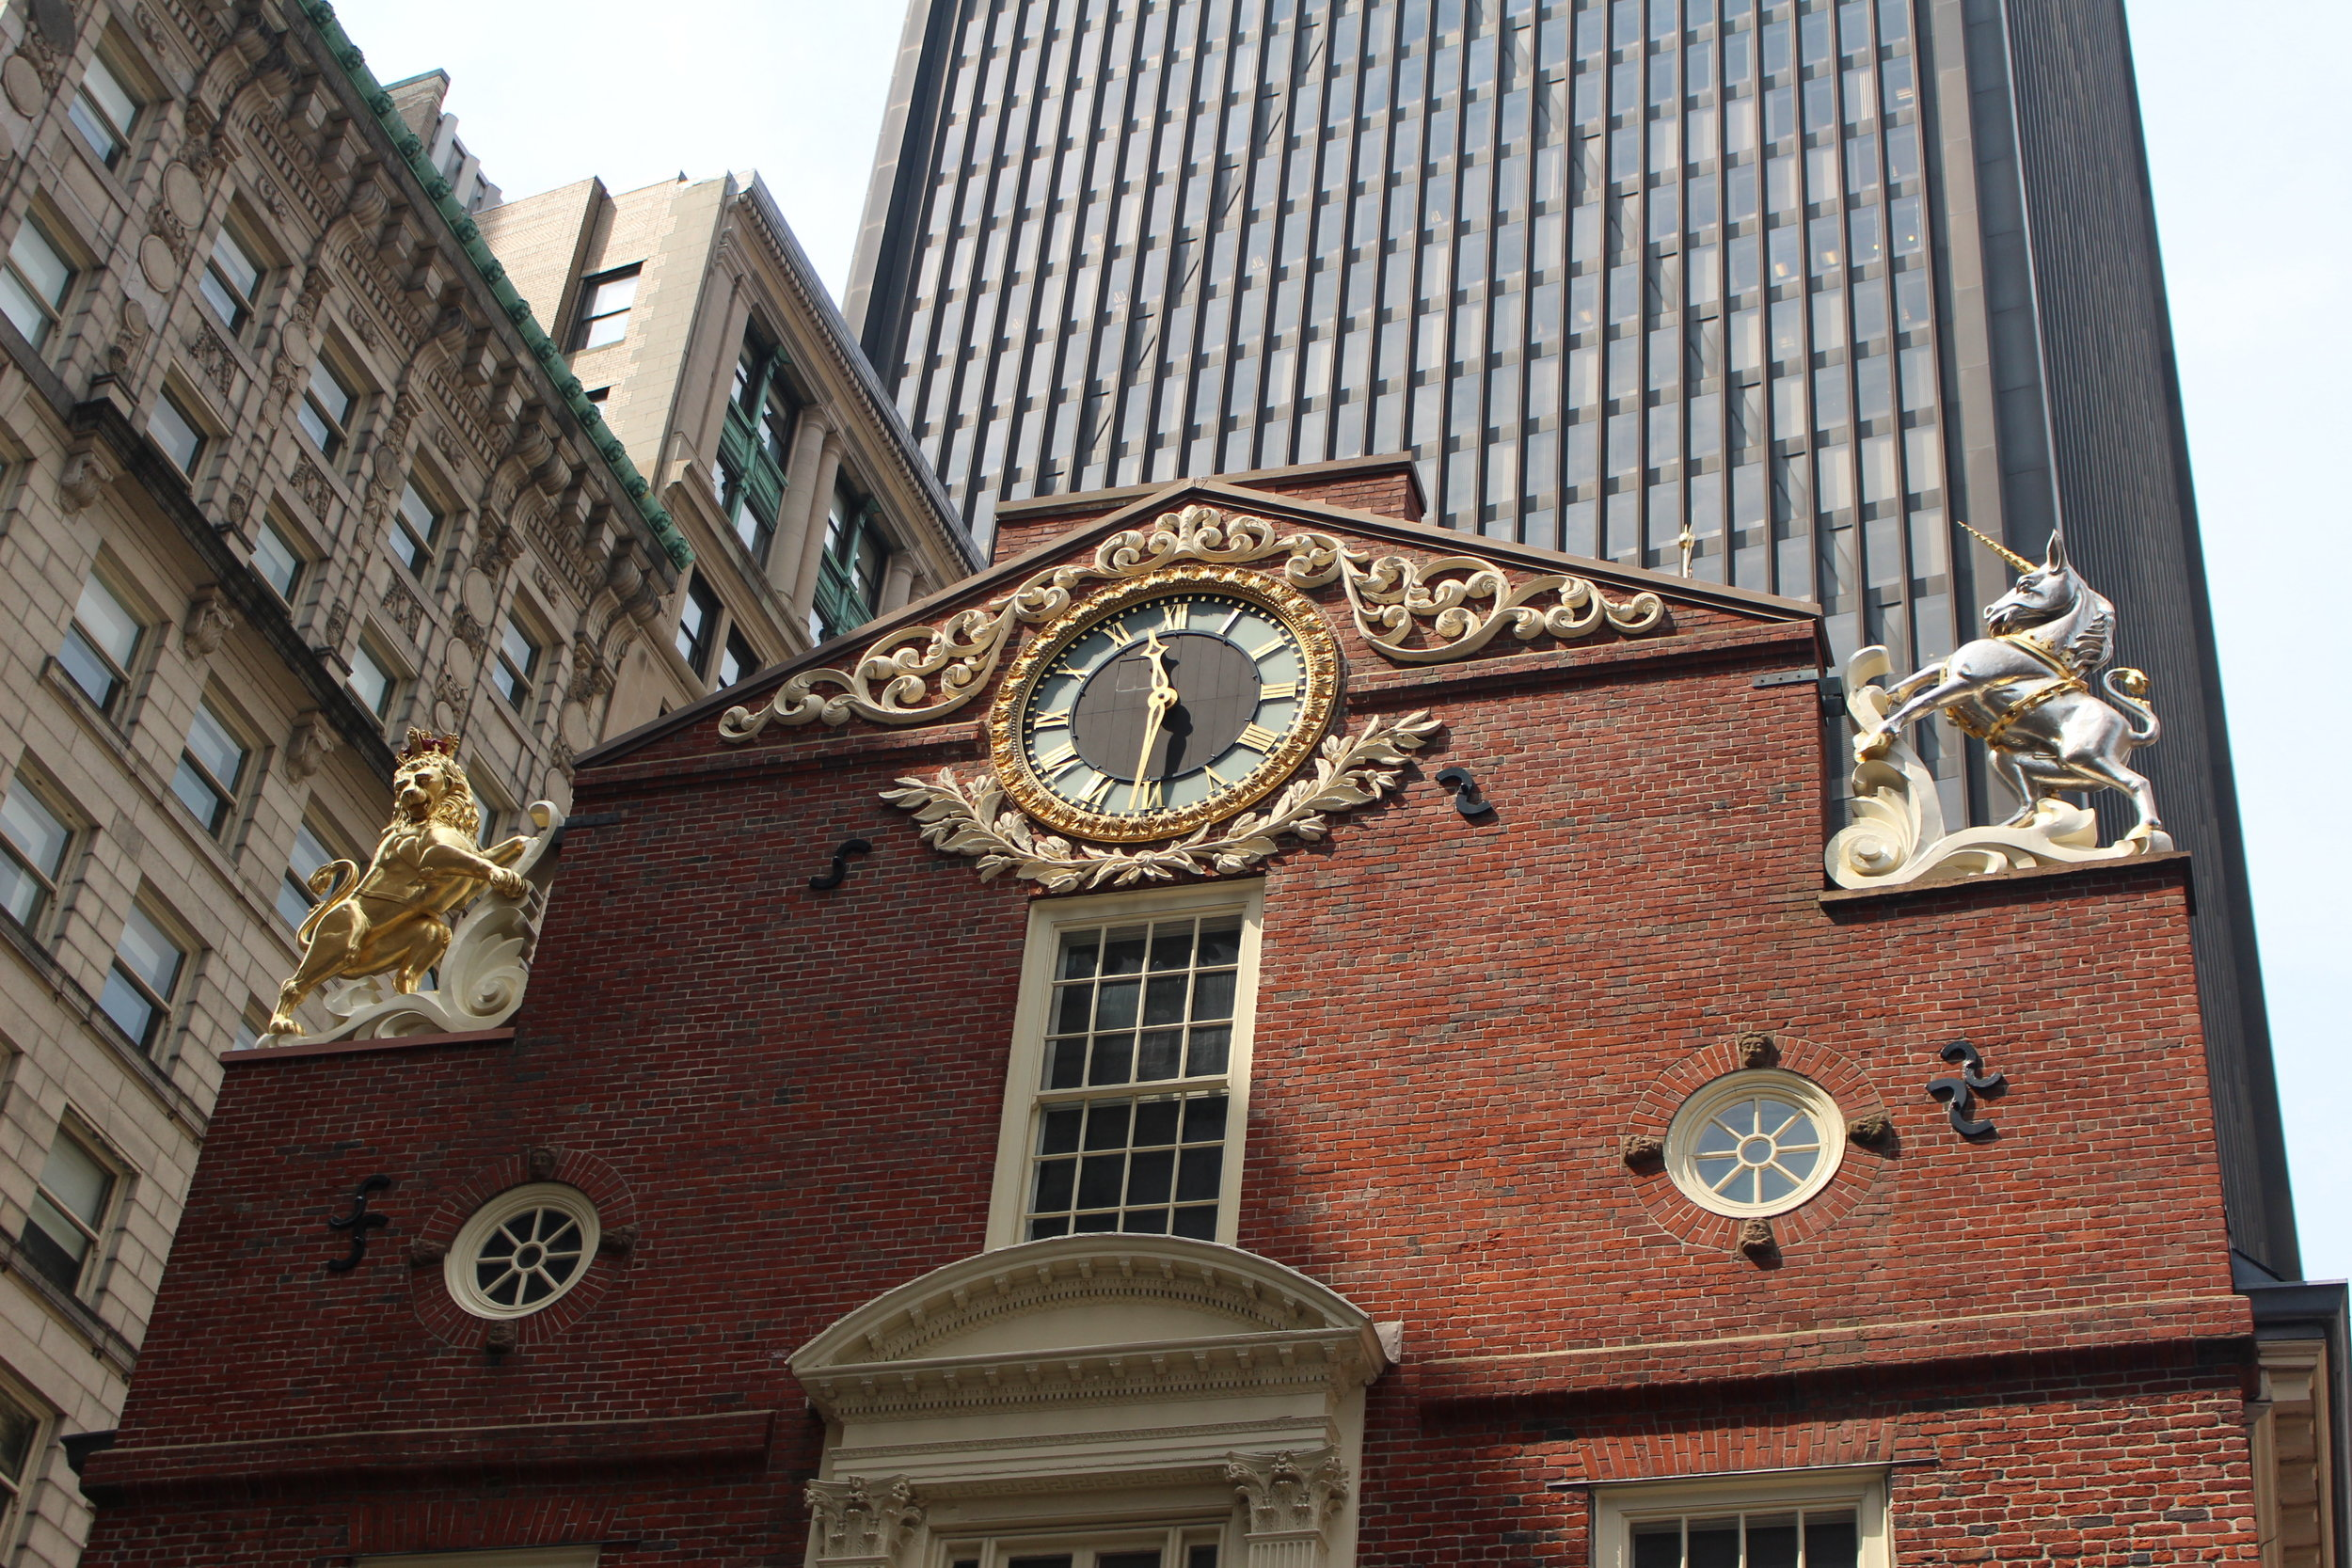 The golden lion with the crown and the silver unicorn on top of the Old State House.